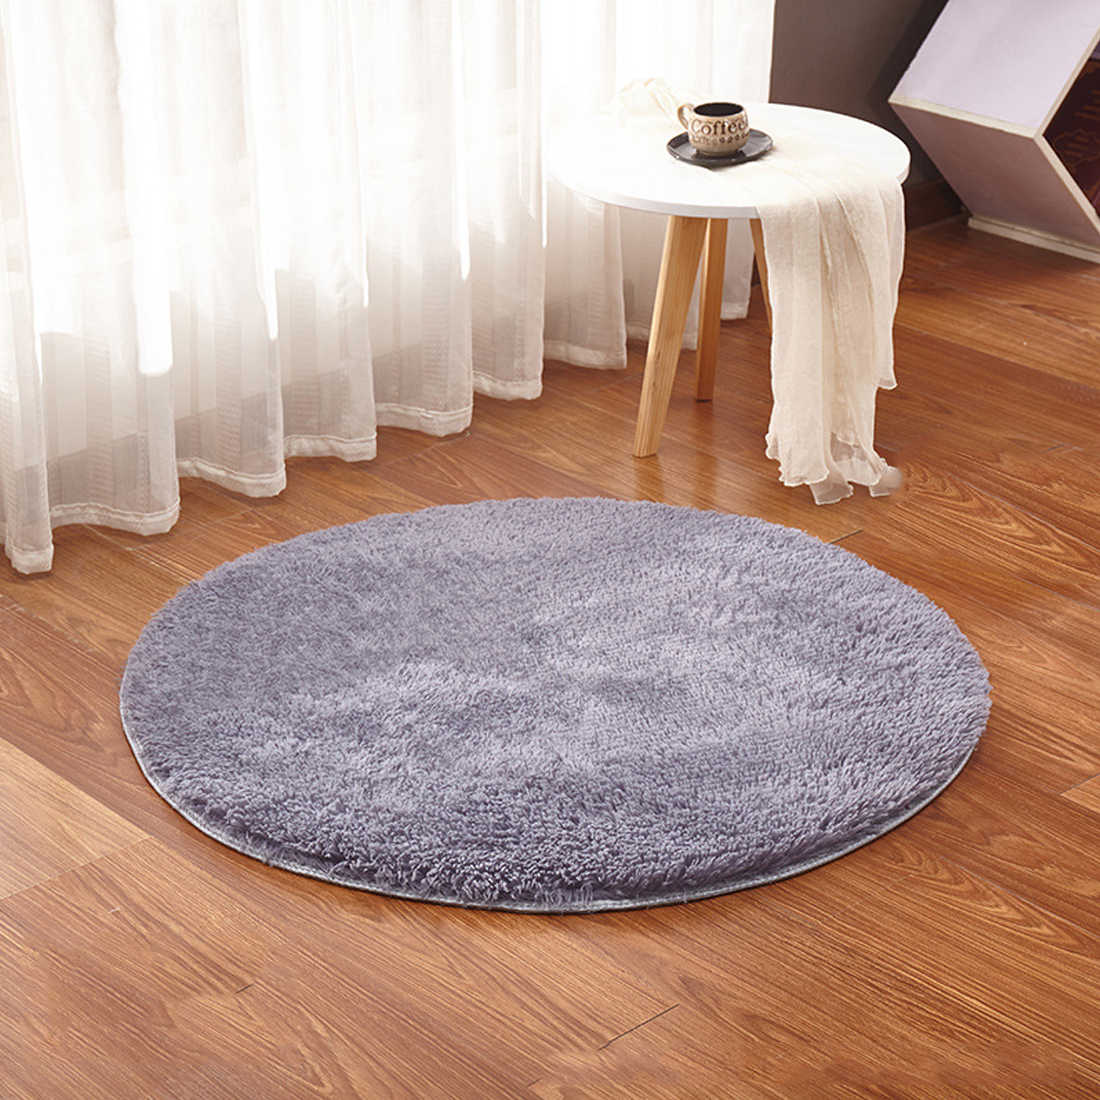 Modern Mat Fluffy Round Rug Carpets for Living Room Decor Faux Fur Carpet Kids Room Long Plush Rugs for Bedroom Shaggy Area Rug